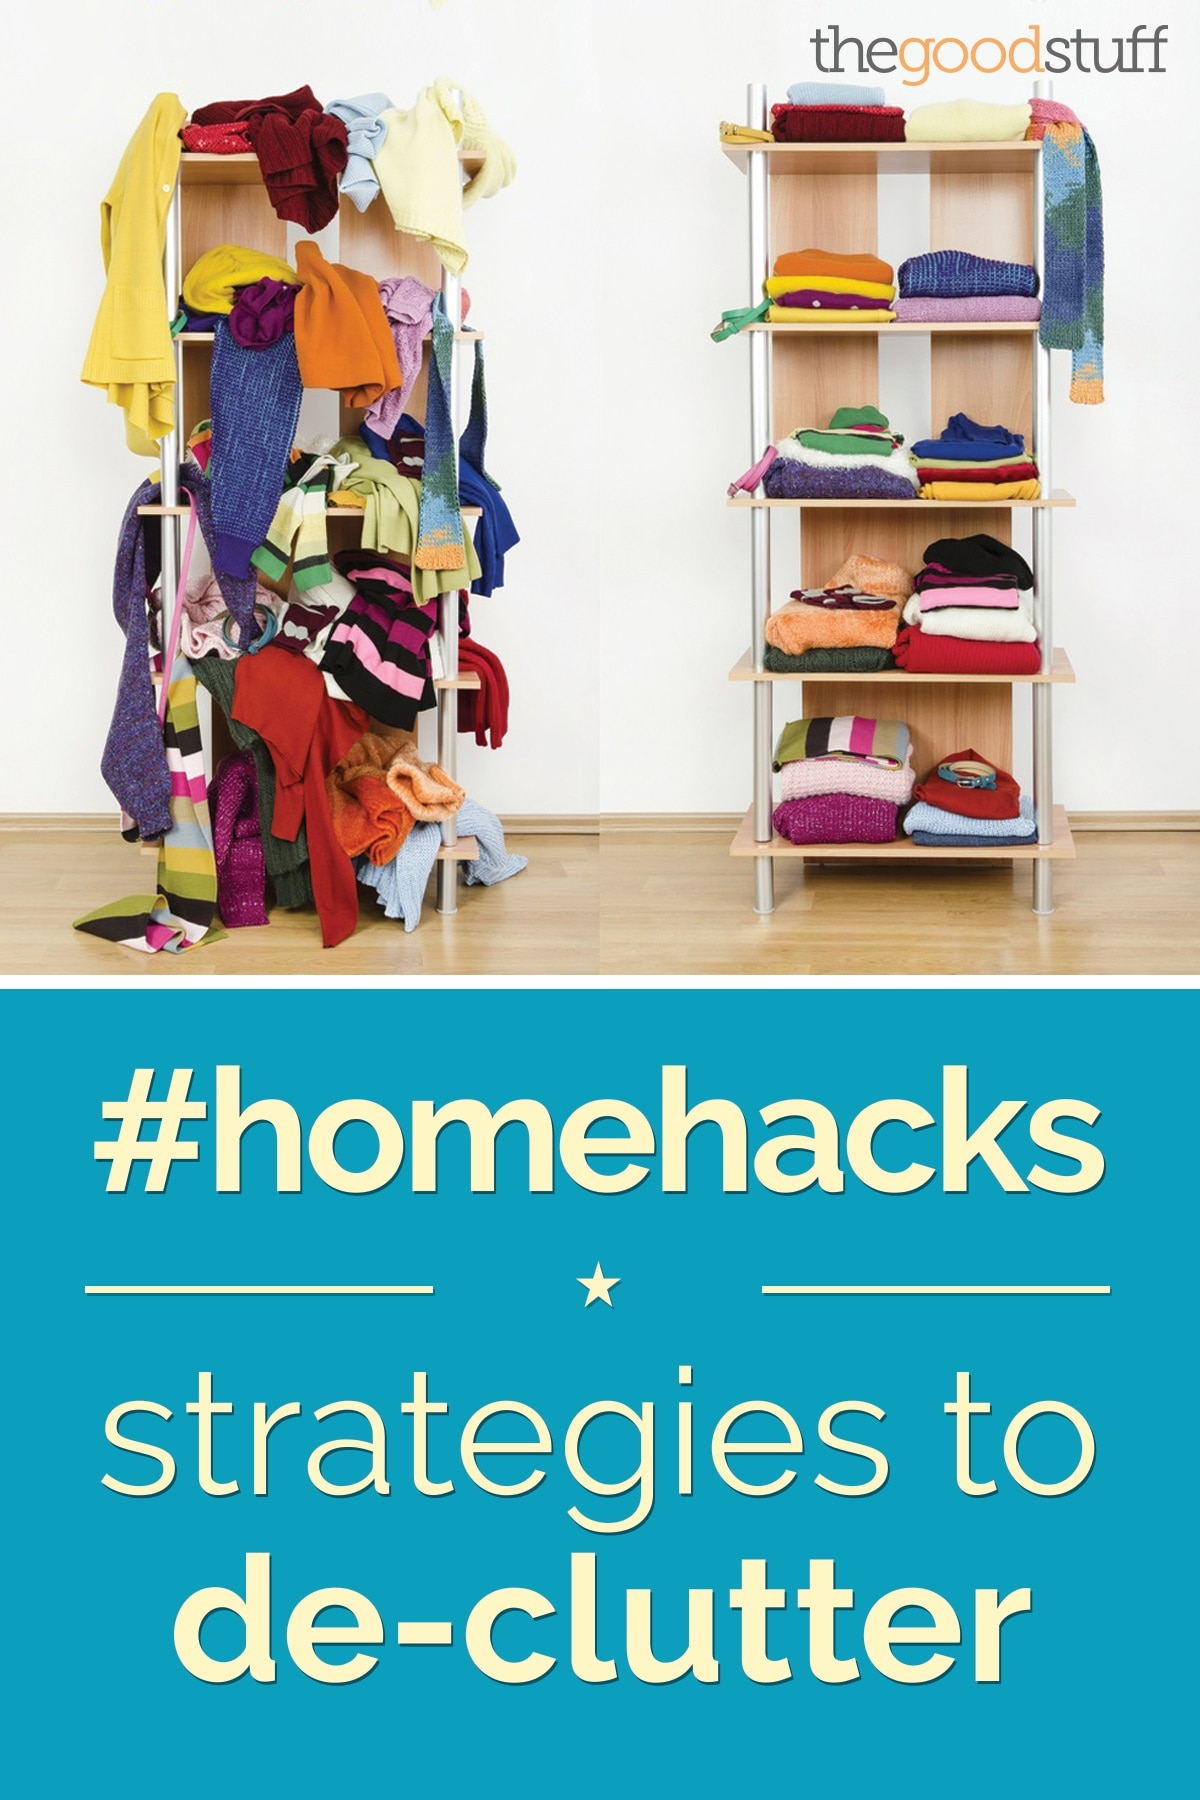 diy-homehacks-de-clutter-strategies